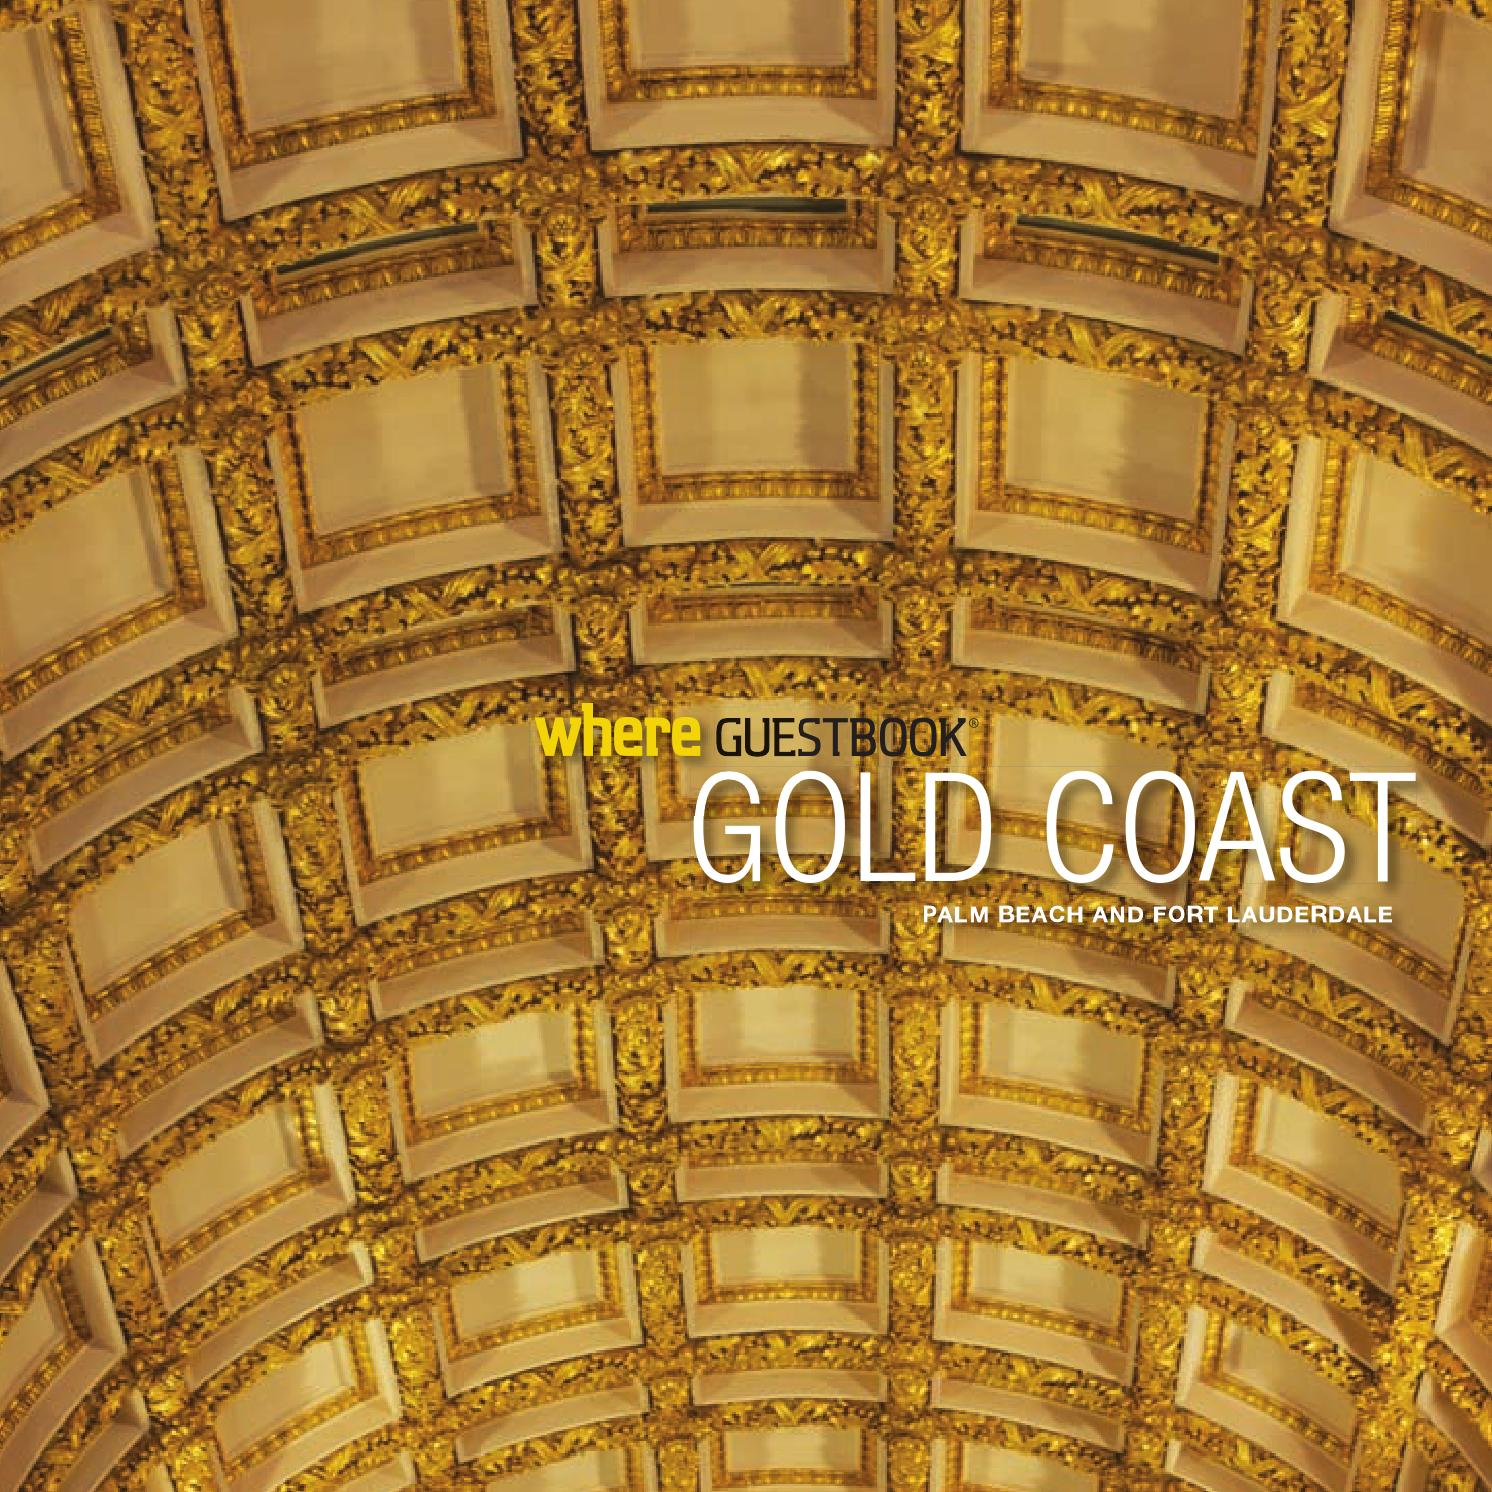 Gold Coast GuestBook 2013-2014 by Morris Media Network - issuu